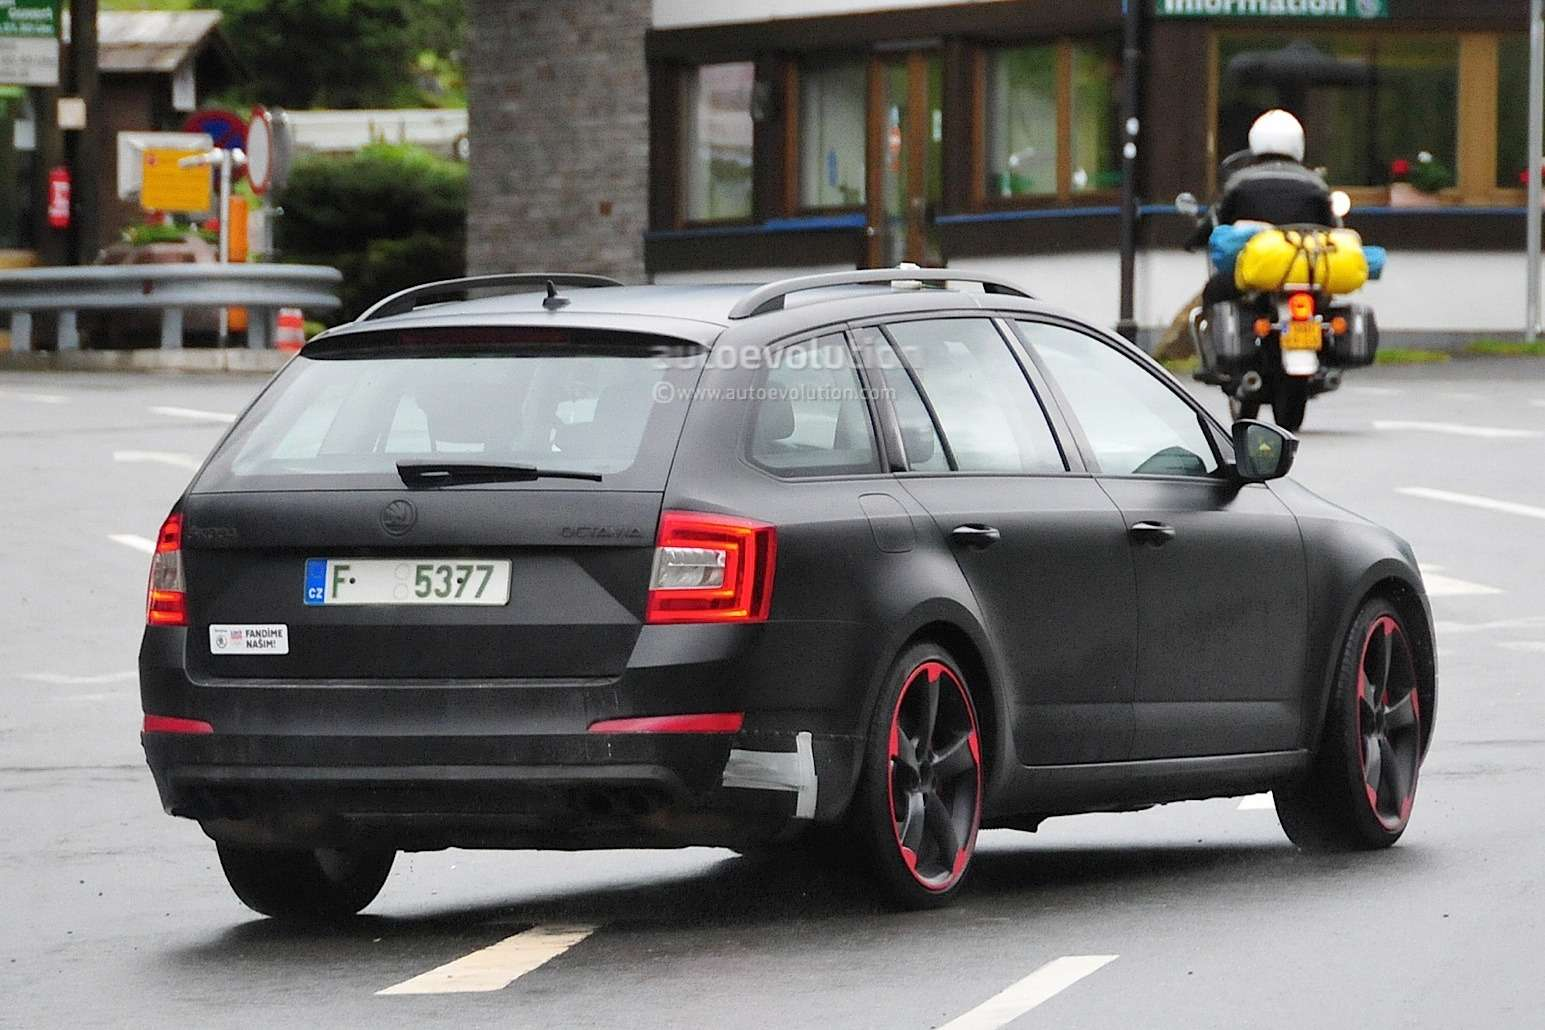 hardcore-skoda-octavia-vrs-with-280-hp-spied-for-the-first-time-photo-gallery_6